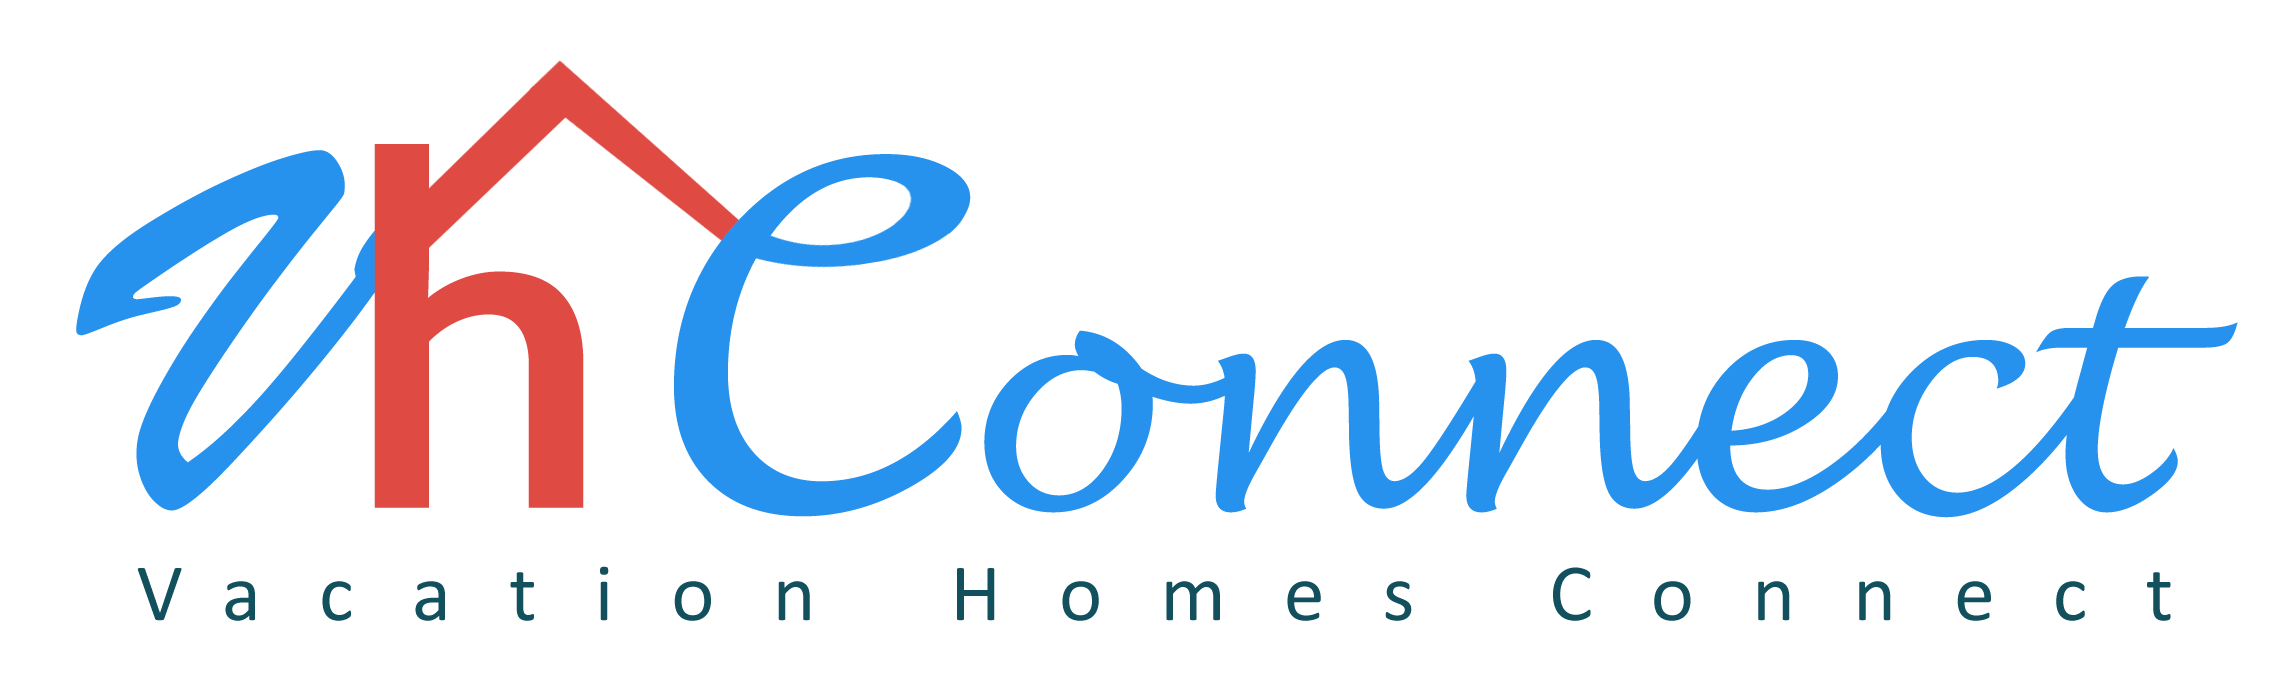 Vacation Homes Connect